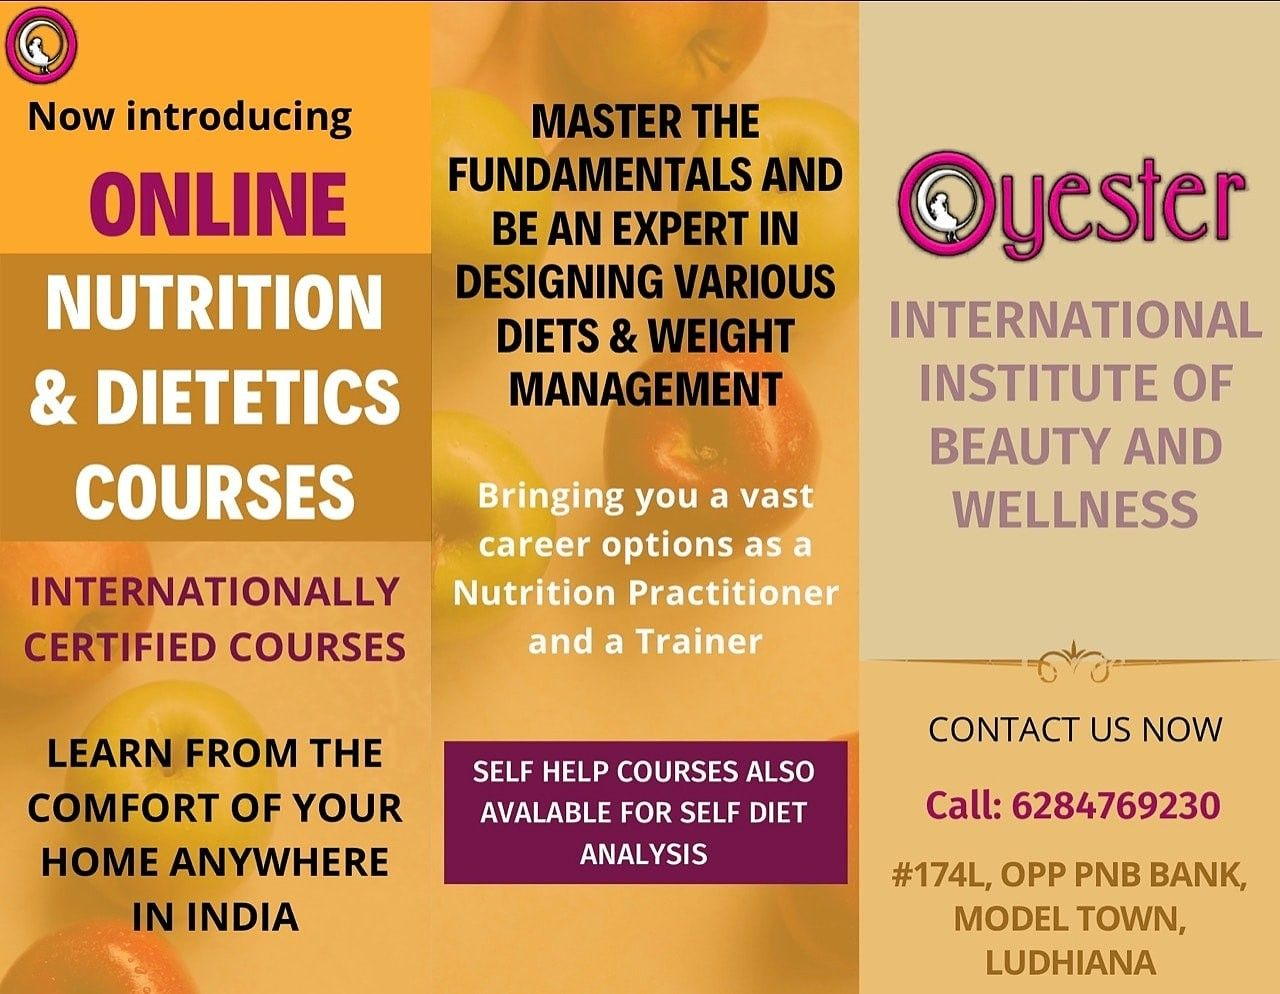 Online Nutrition Course Makeup Course Beauty Courses Beauty Business